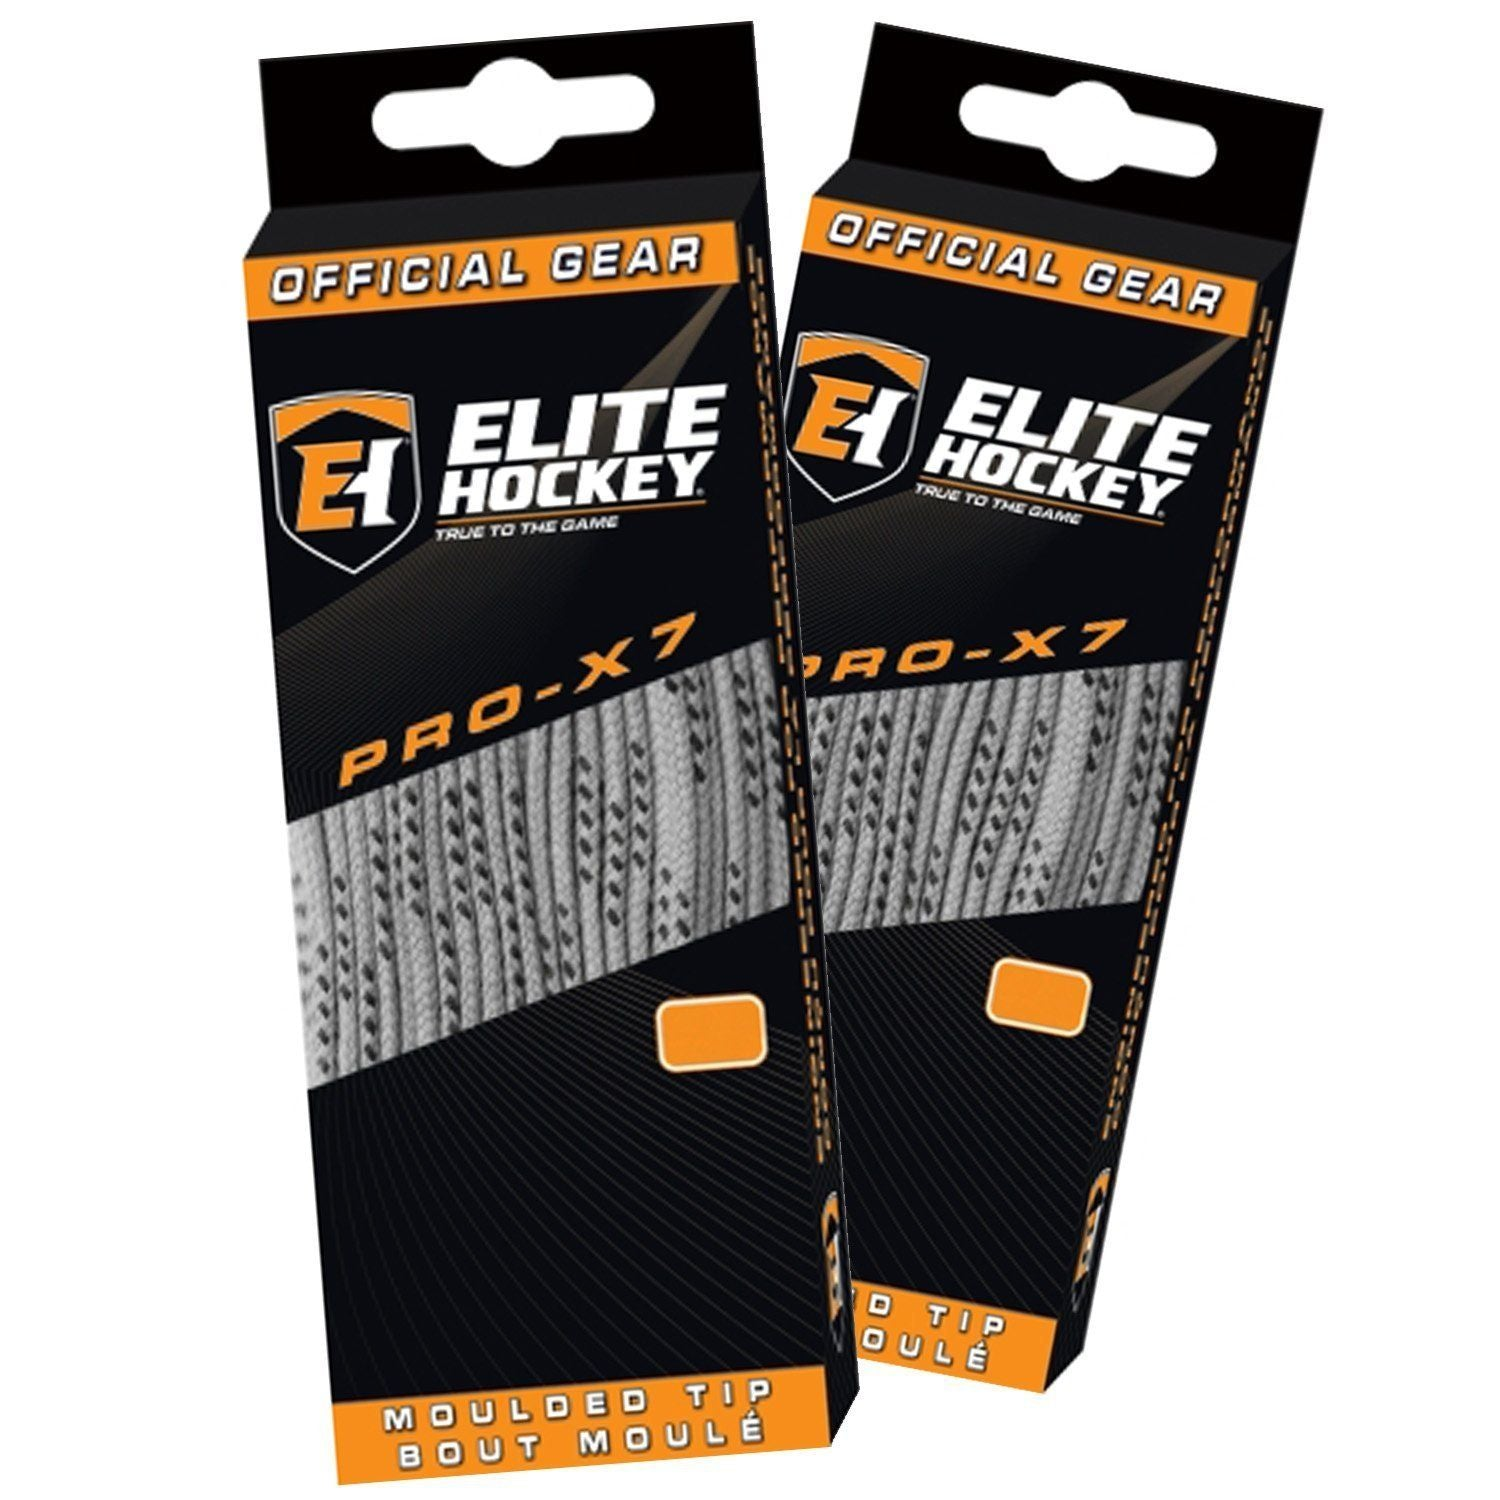 Elite Hockey Pro X7 Wide Cotton Hockey Skate Laces -- SET of 2 Pairs - Good Gear Hockey Equipment